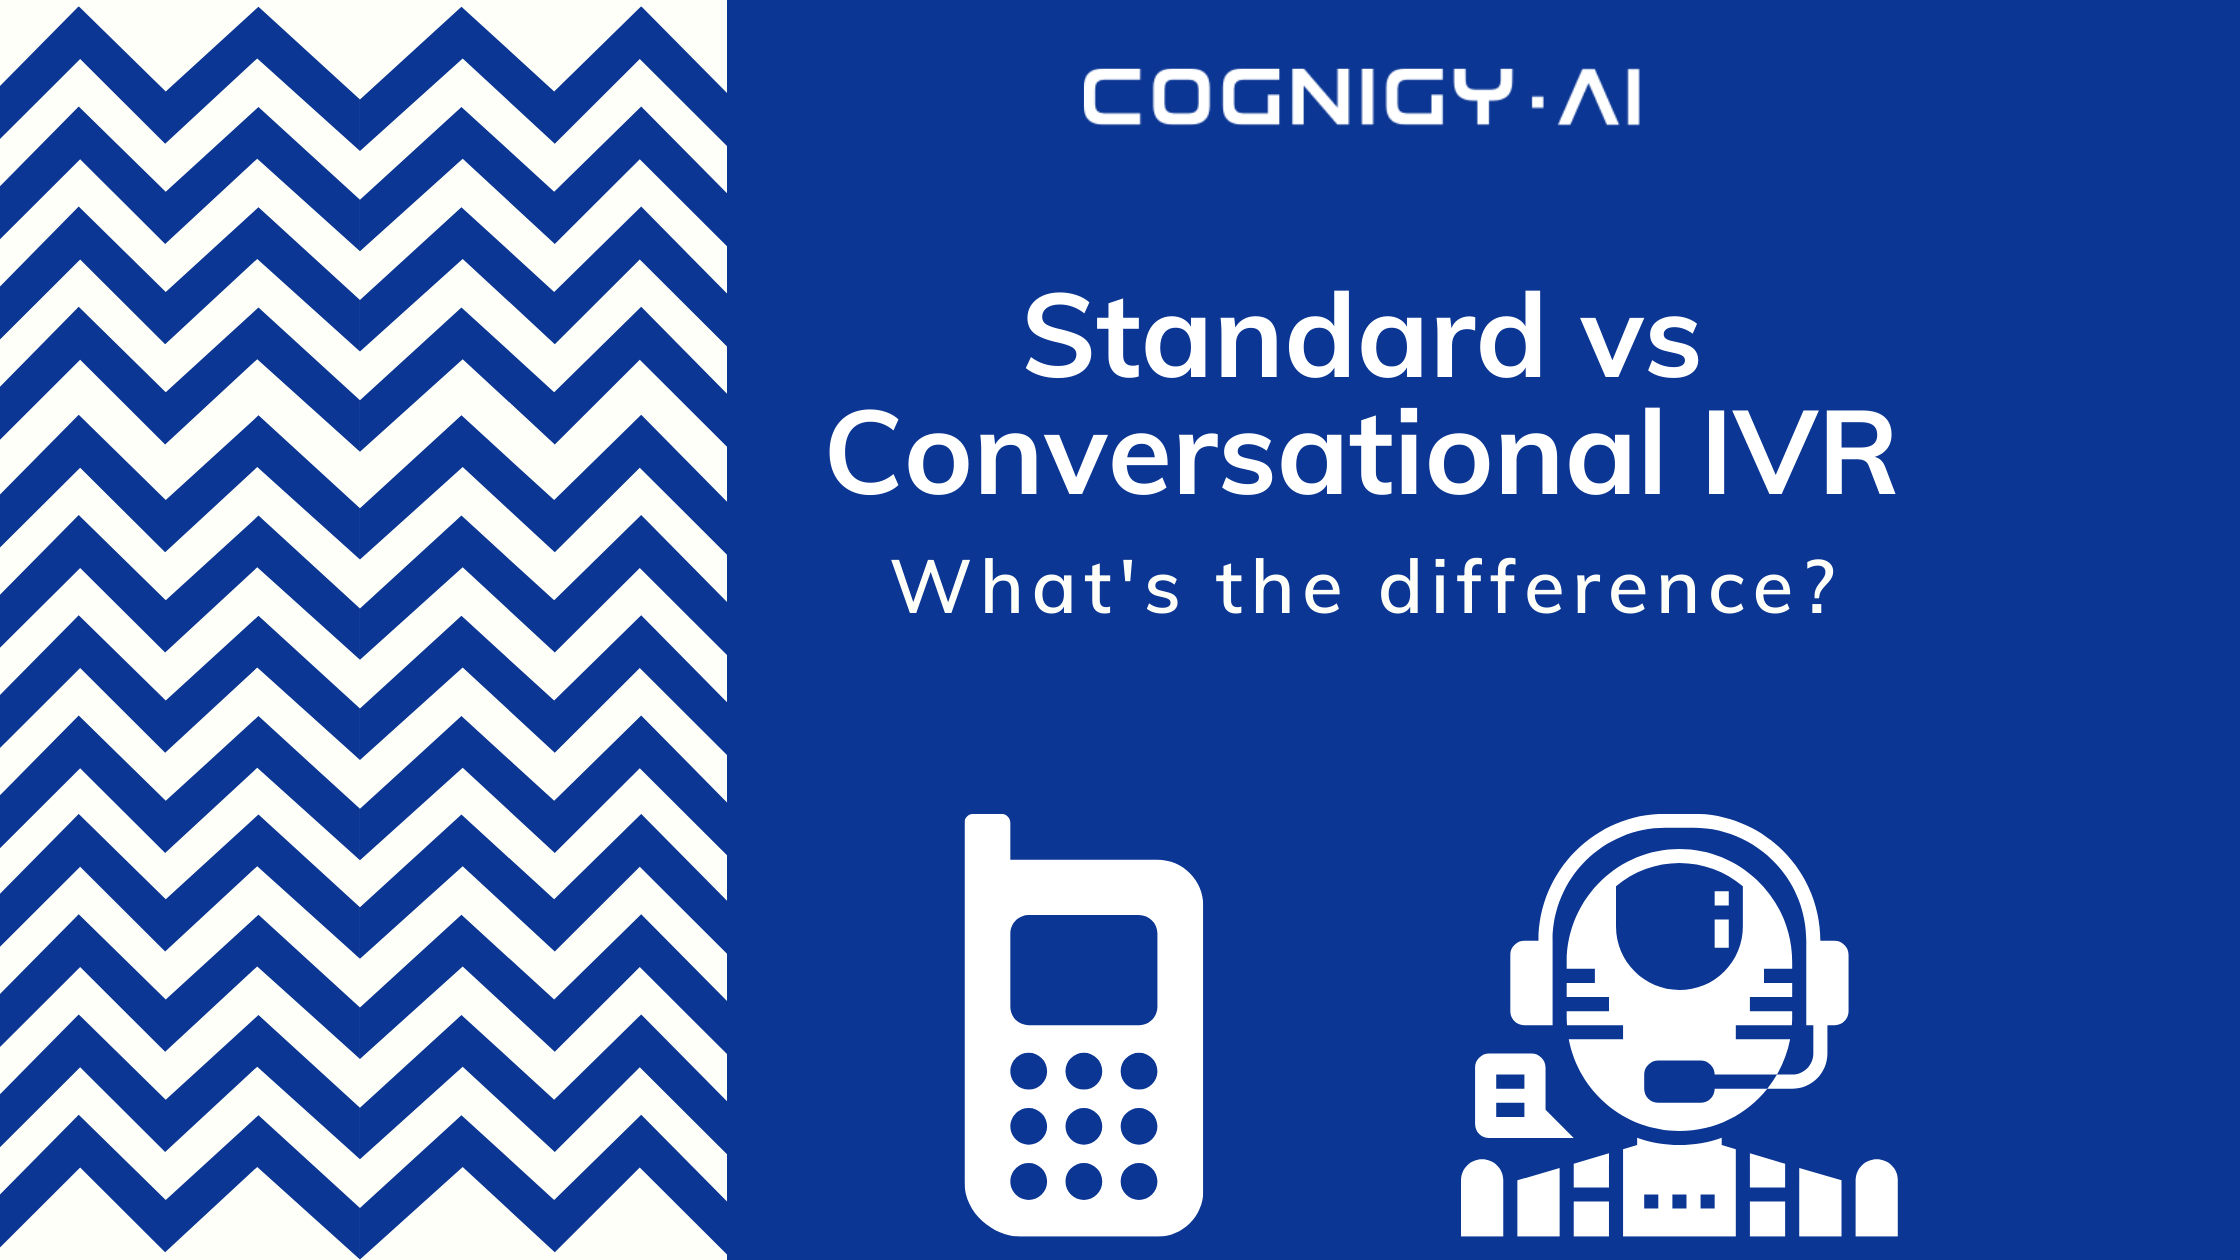 cover standard vs conversational ivr difference